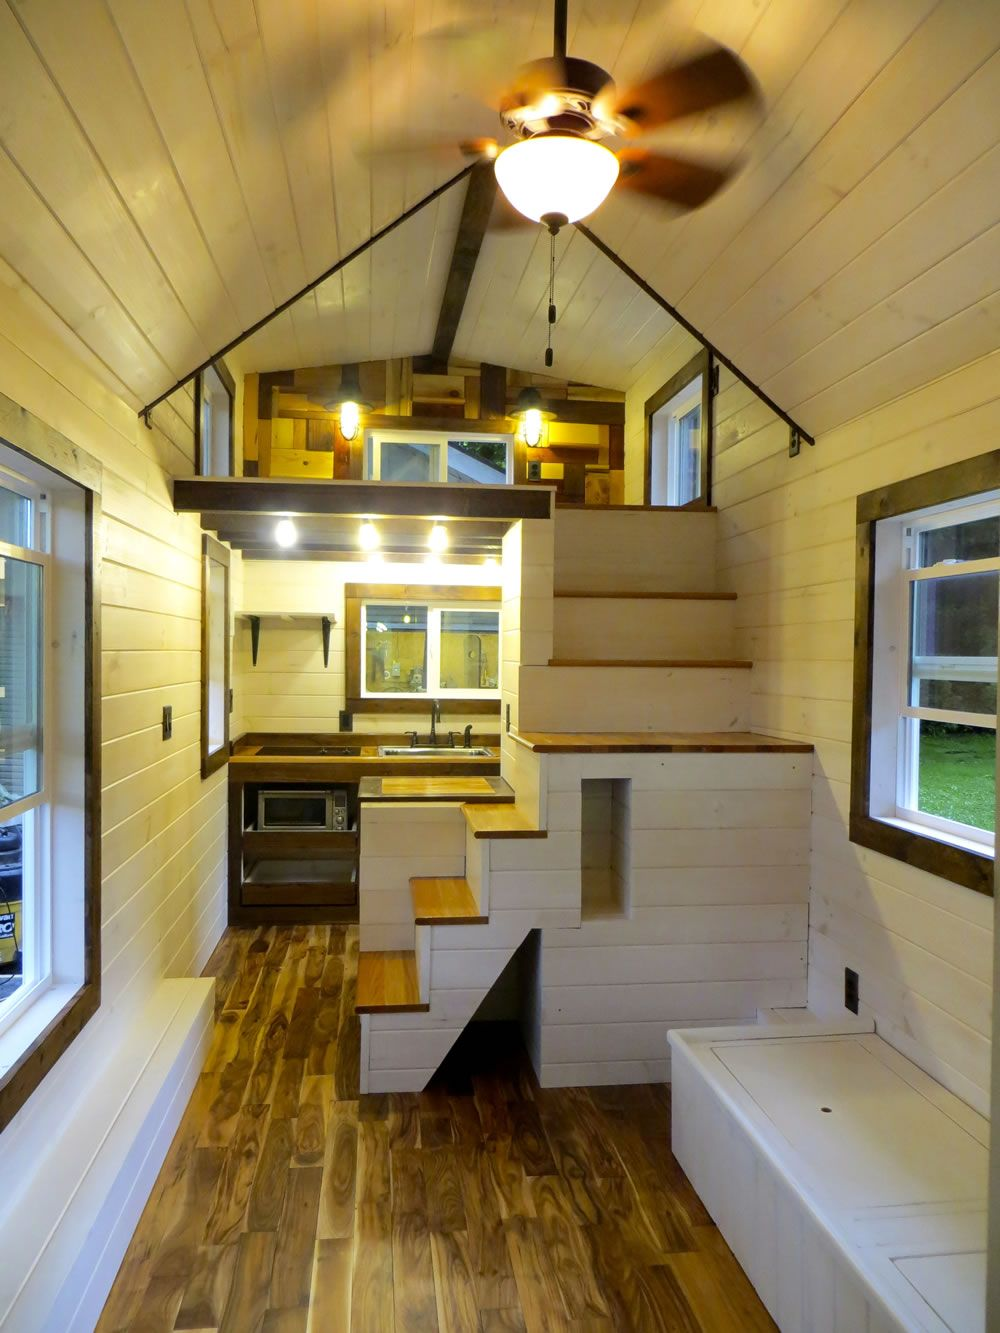 20 cozy tiny house decor ideas